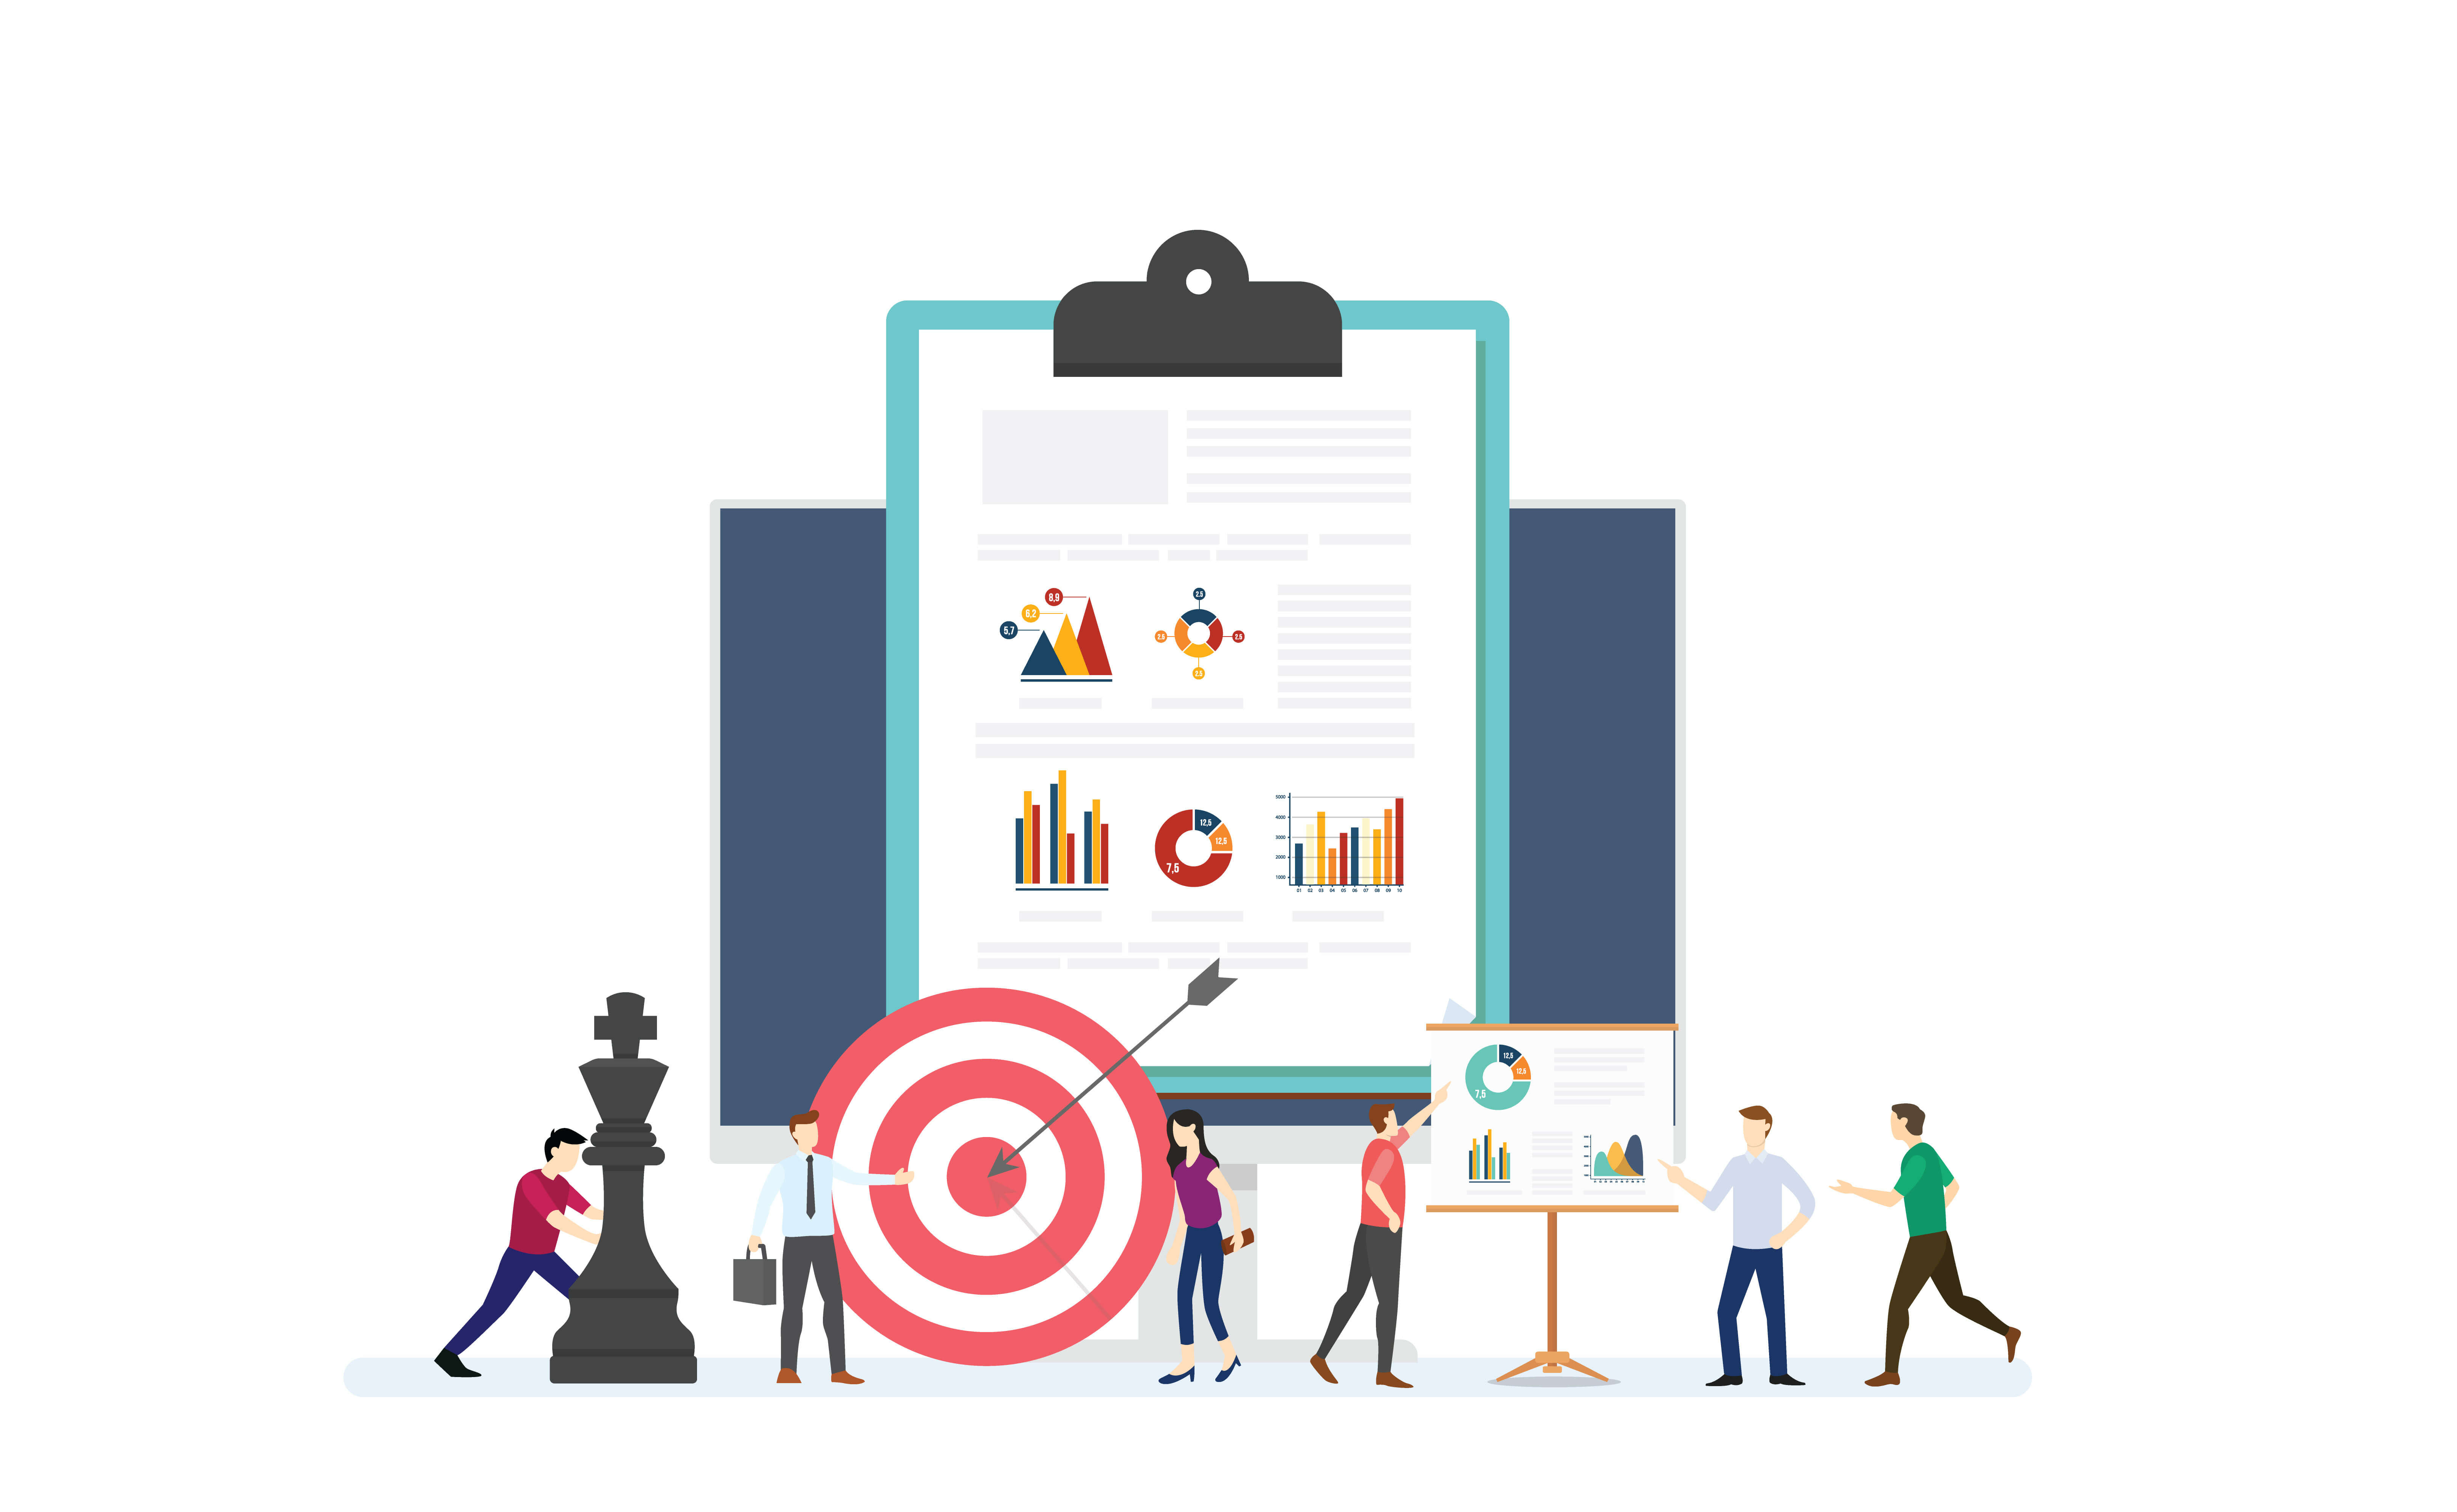 Illustration to show email marketing results that could improve with segmentation